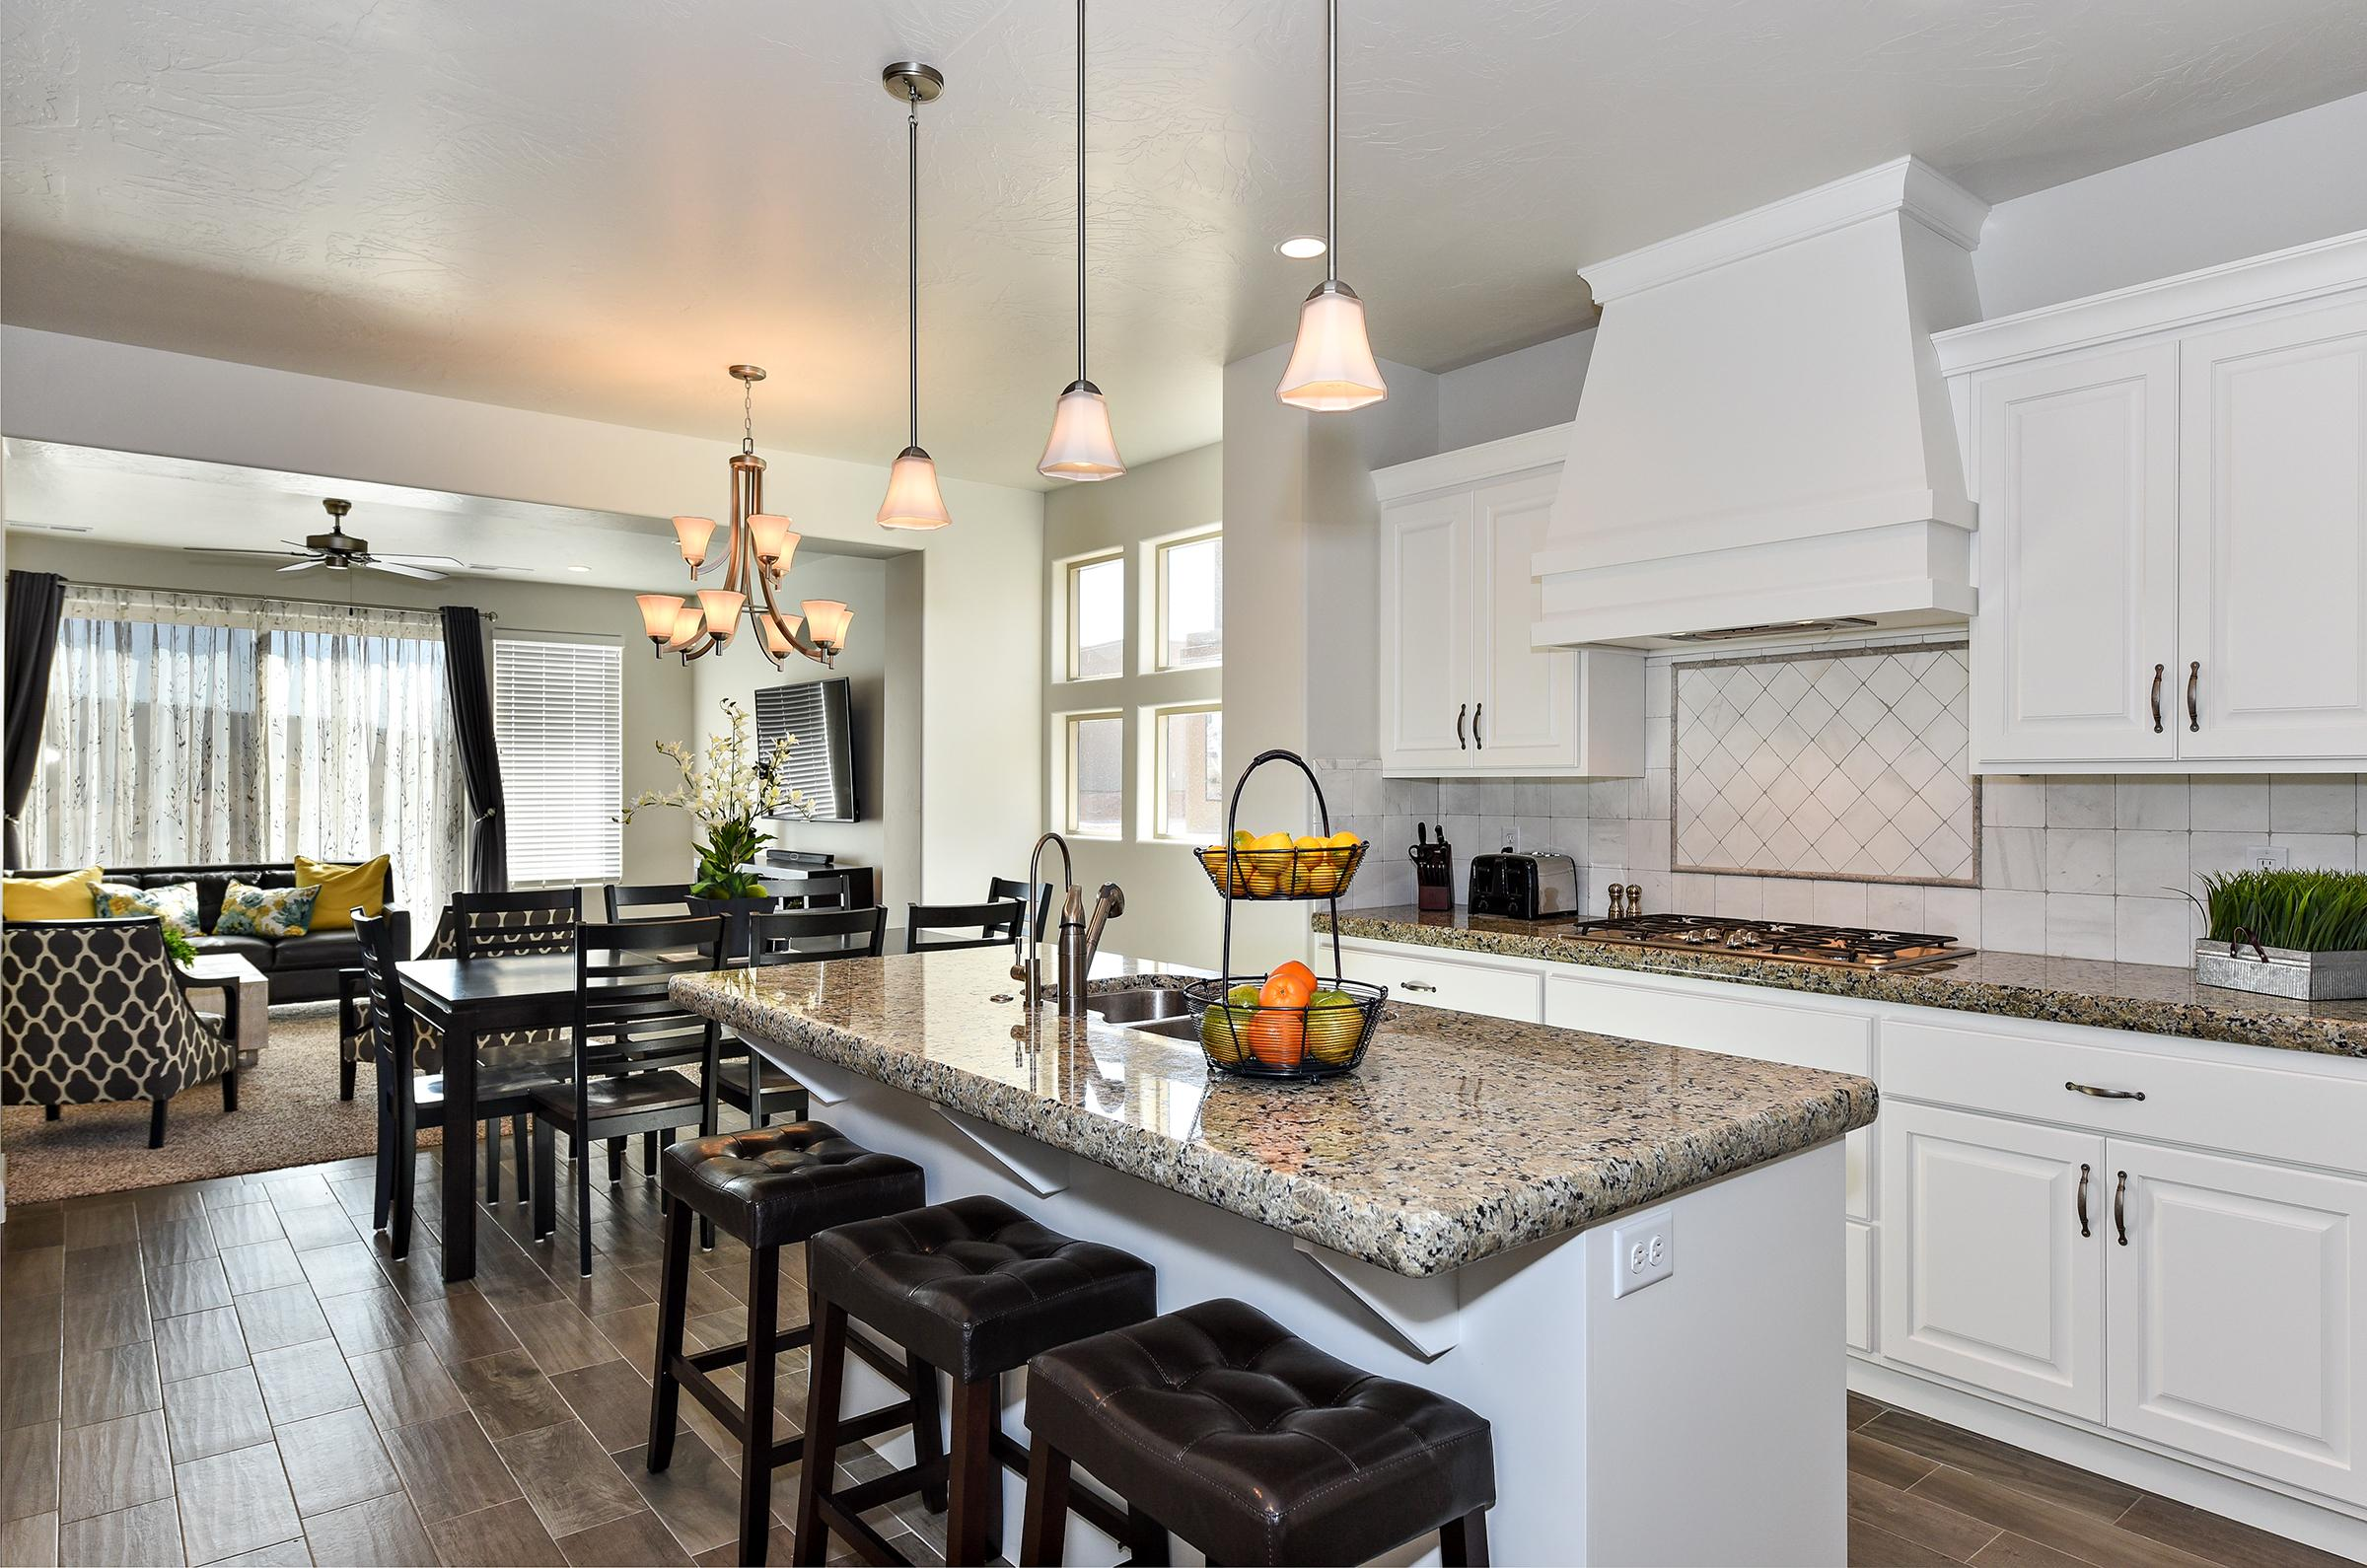 The Kitchen Island comfortably seats 3 adults and creates a great space for serving and preparing meals.